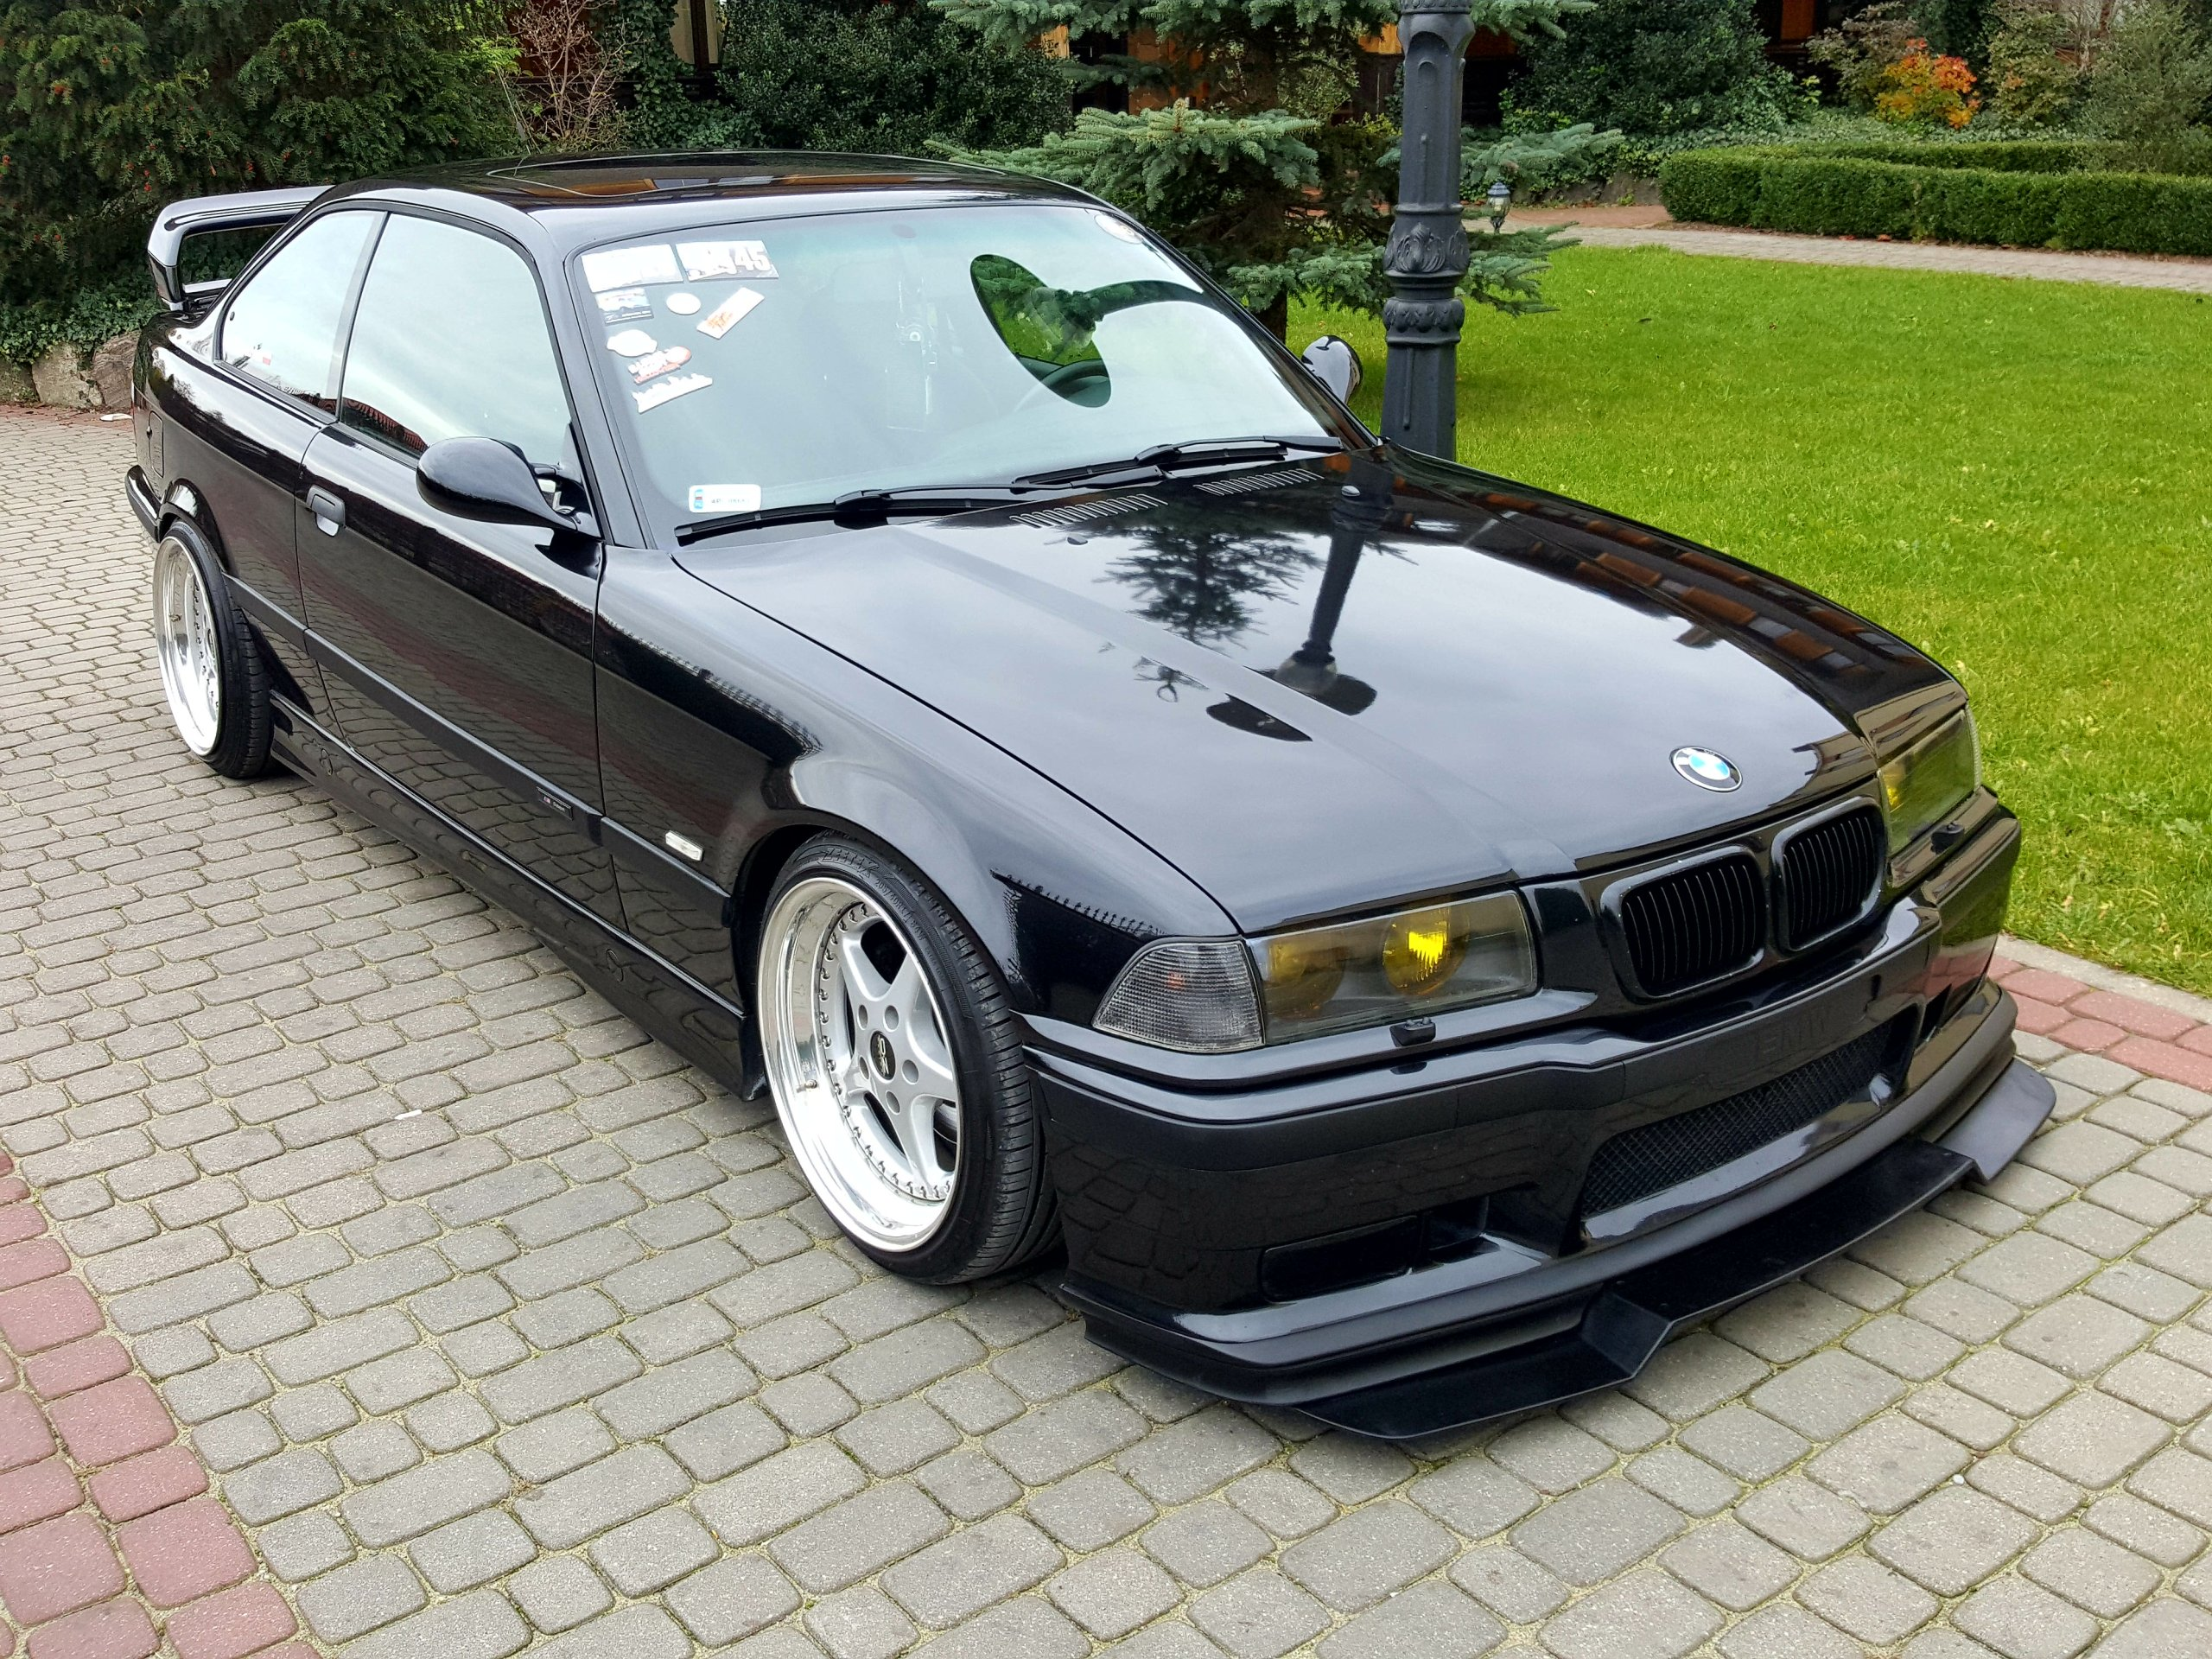 Bmw E36 328 Clubsport Gt Class Oz Mito Vadery 7037546931